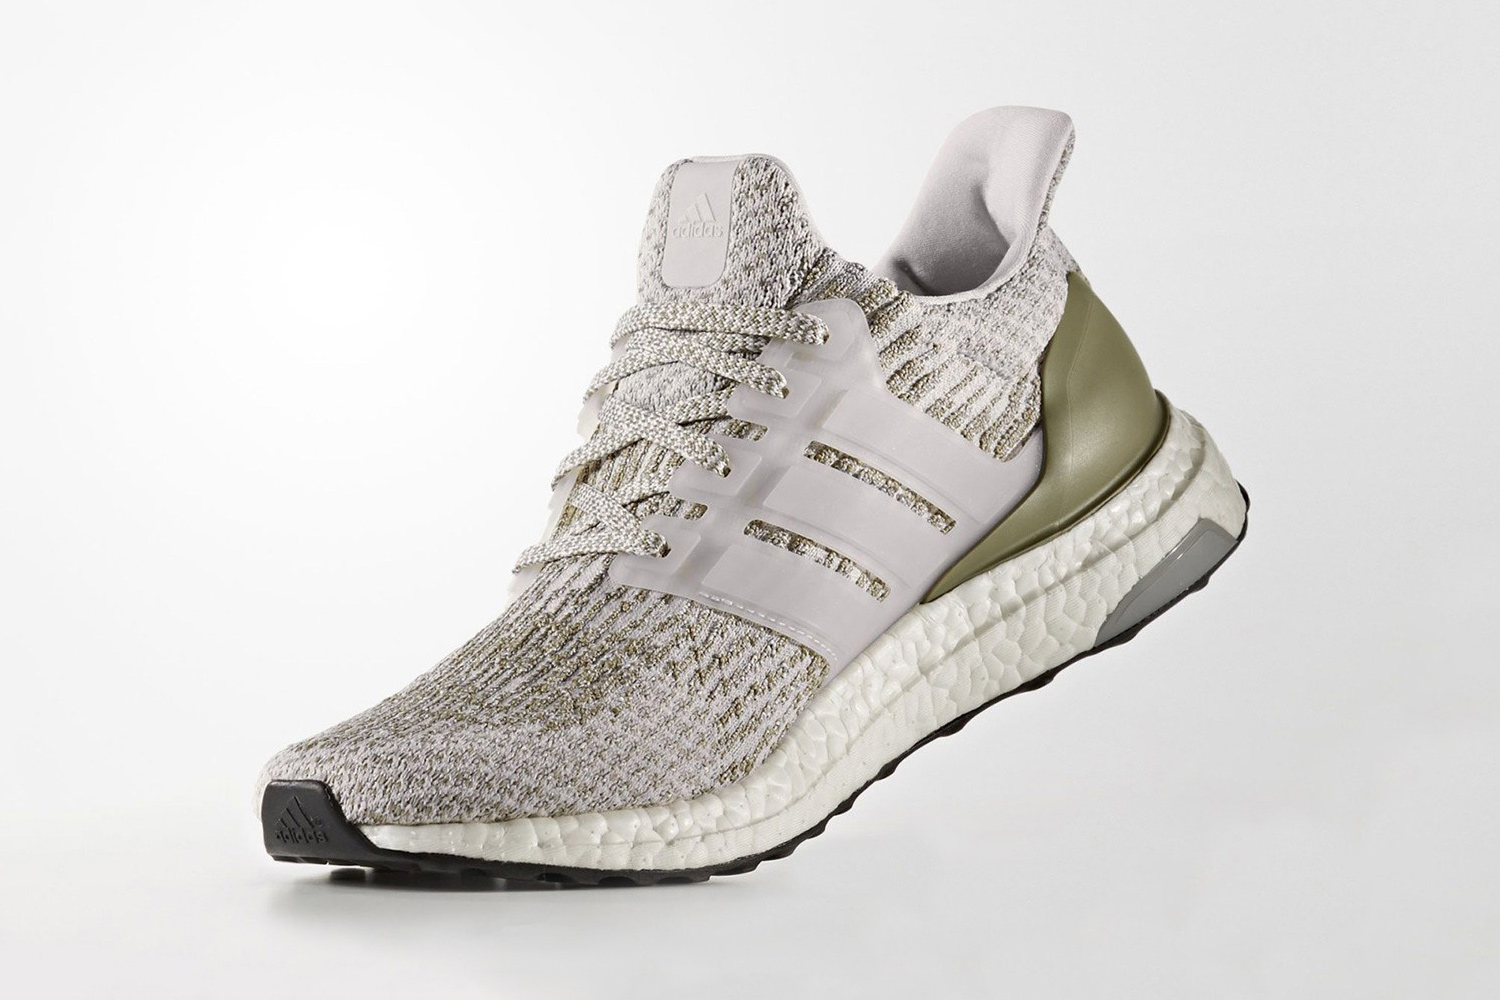 Adidas UltraBOOST 3.0 Is To Arrive In A New Olive Colourway